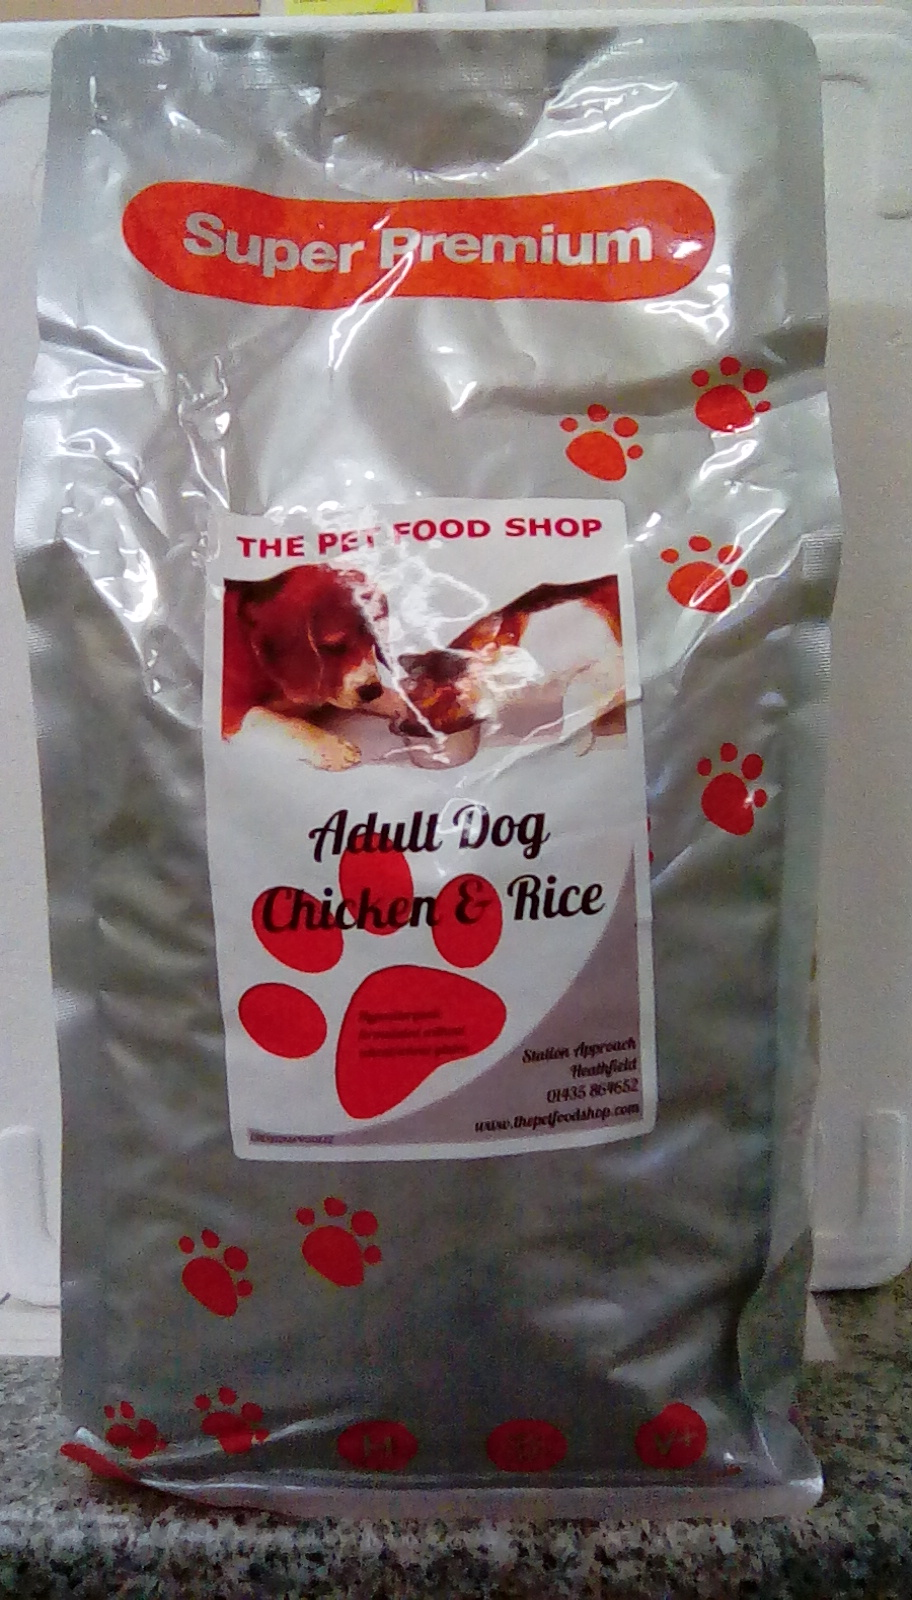 Pet Food Shop Heathfield